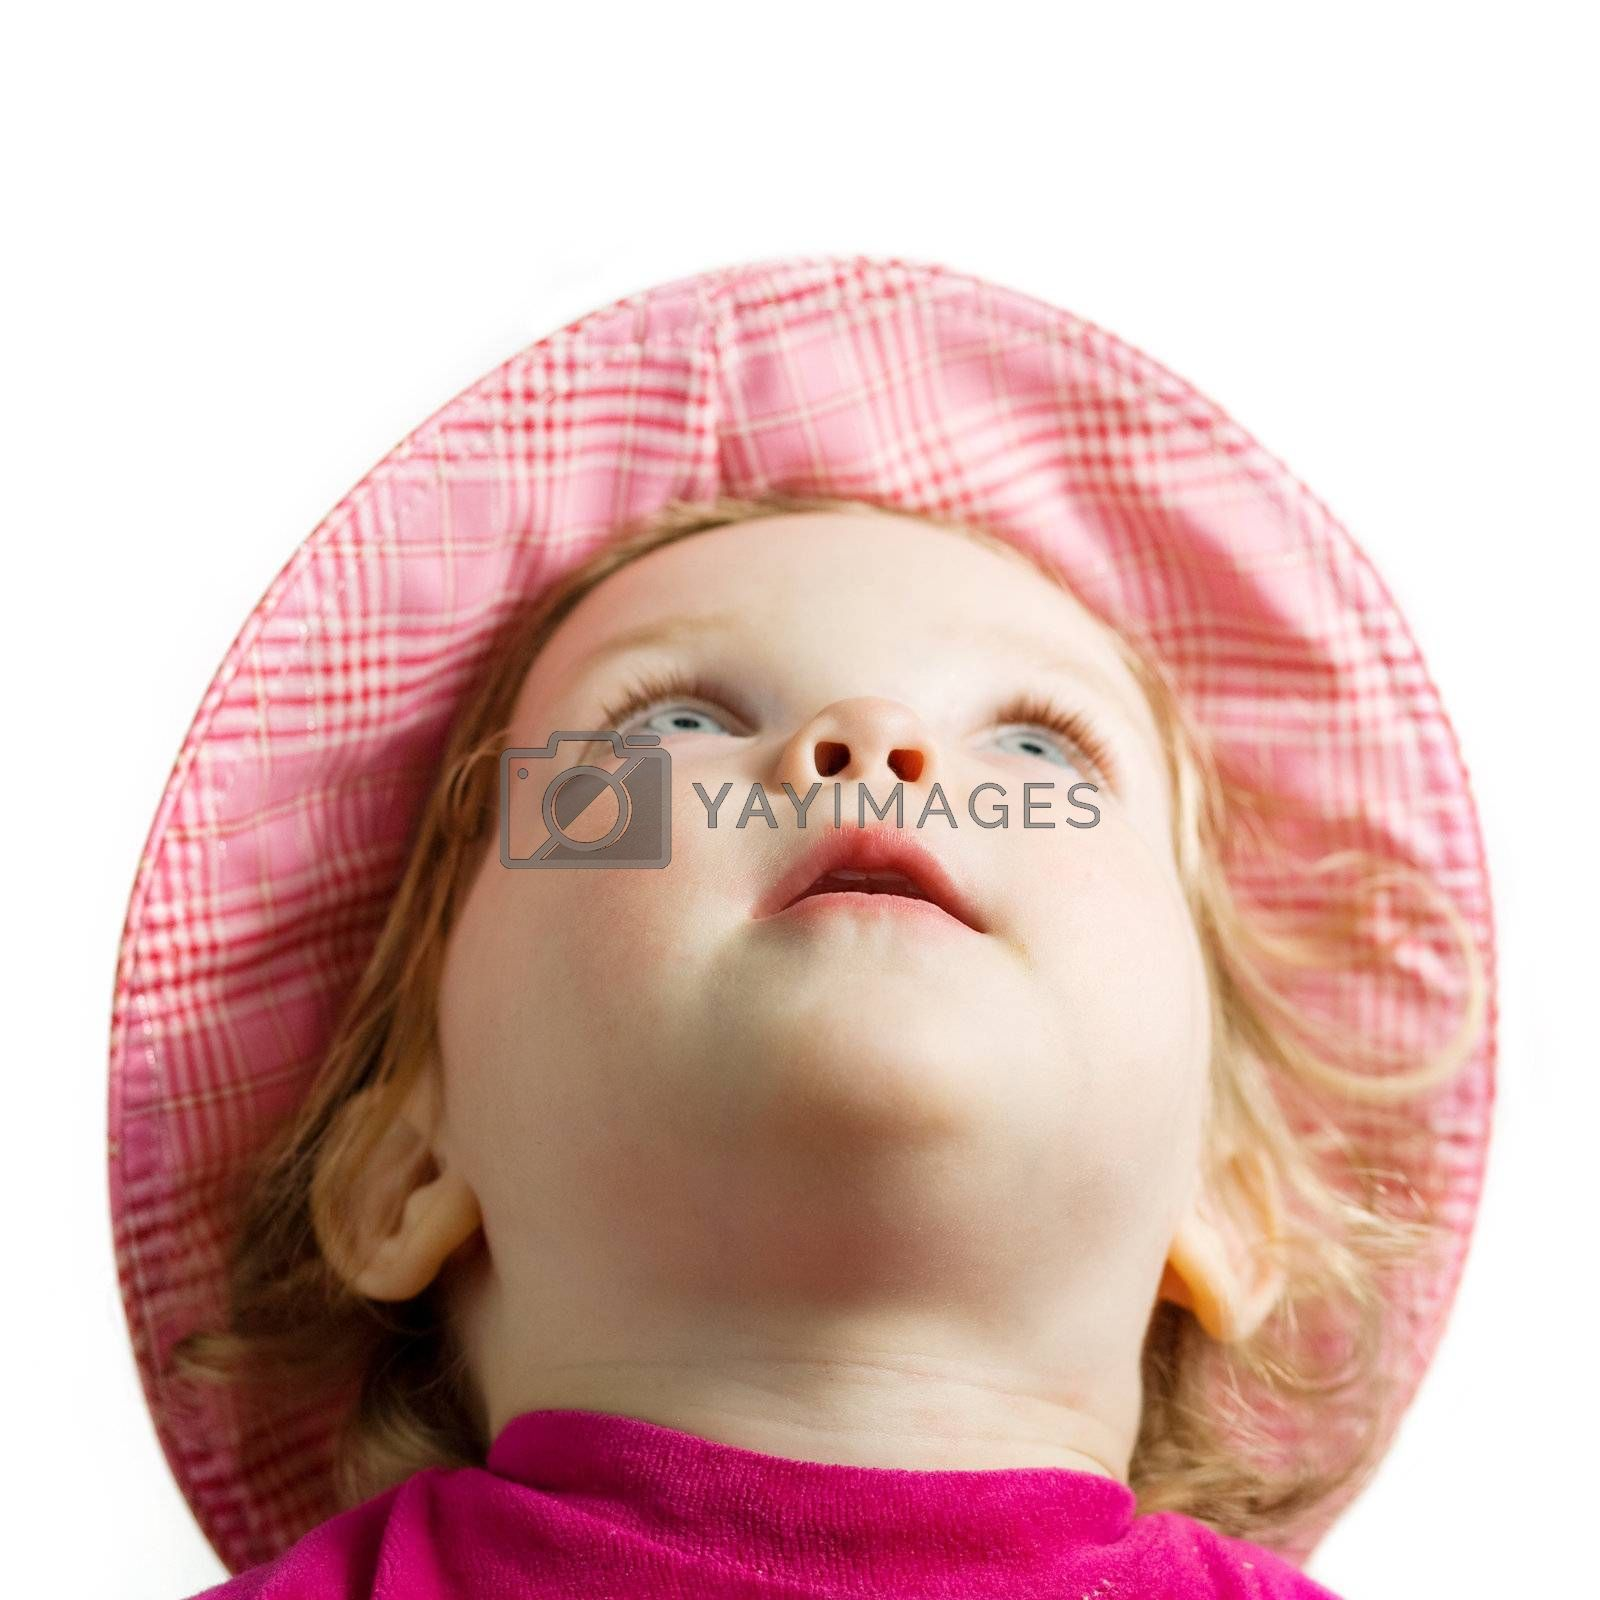 Stock photo: an image of a baby in a hat looking up